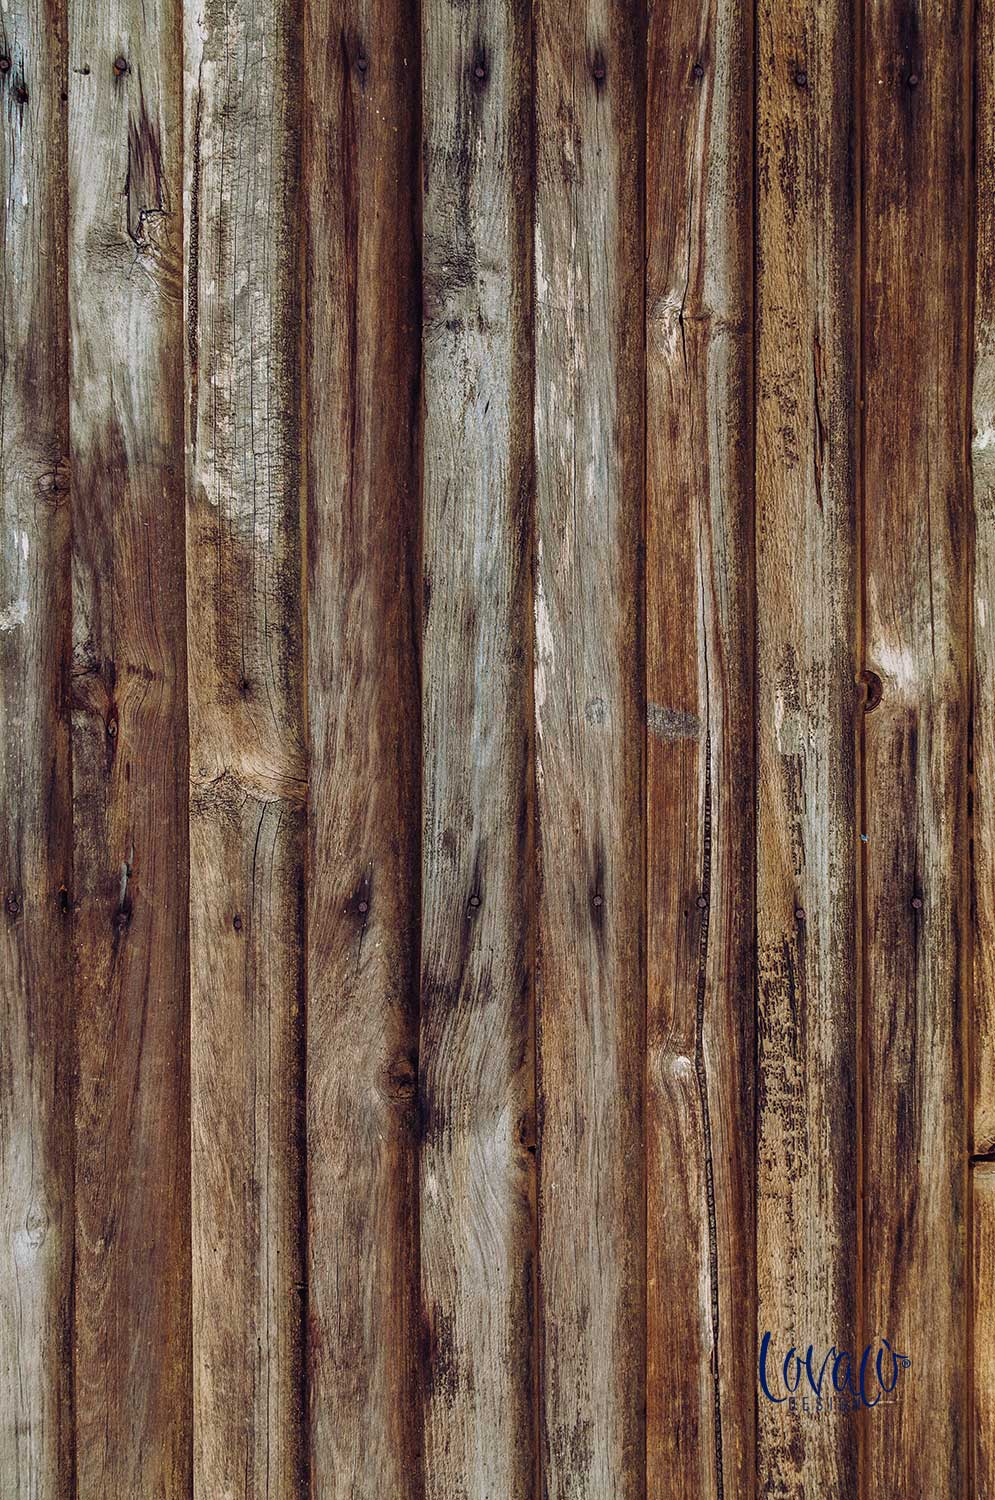 Hipster wood vinyl photography background - Lov 106